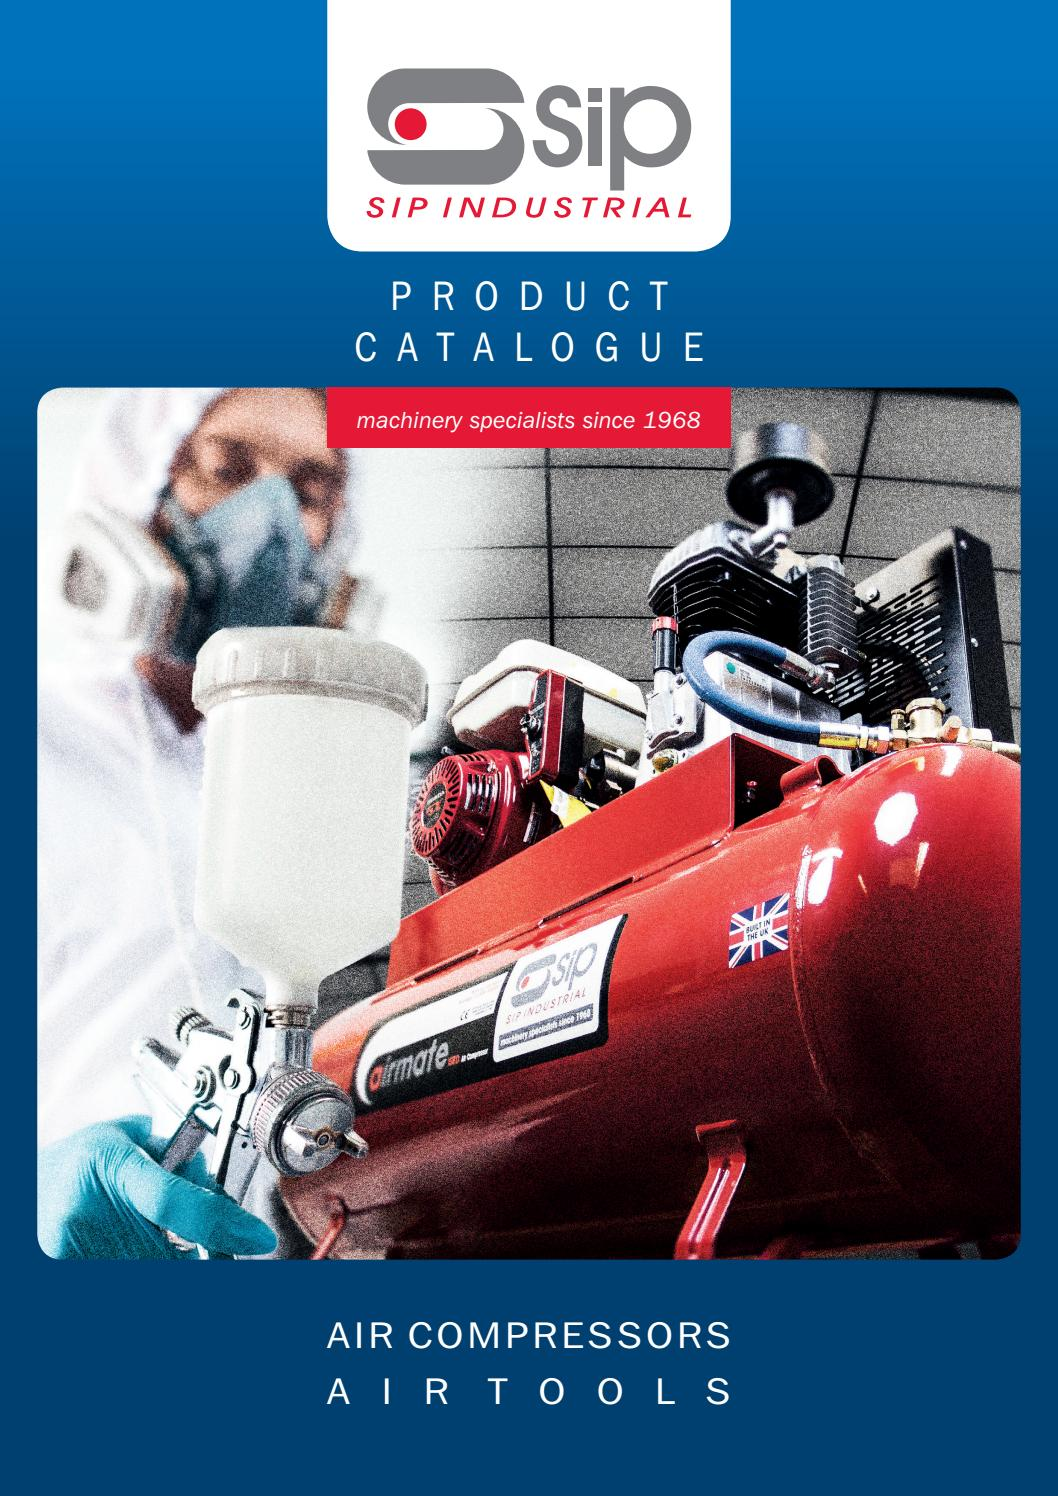 SIP 02143 TRADE ENGINE CLEANING GUN DEGREASING DUSTING WITH 950CC TANK